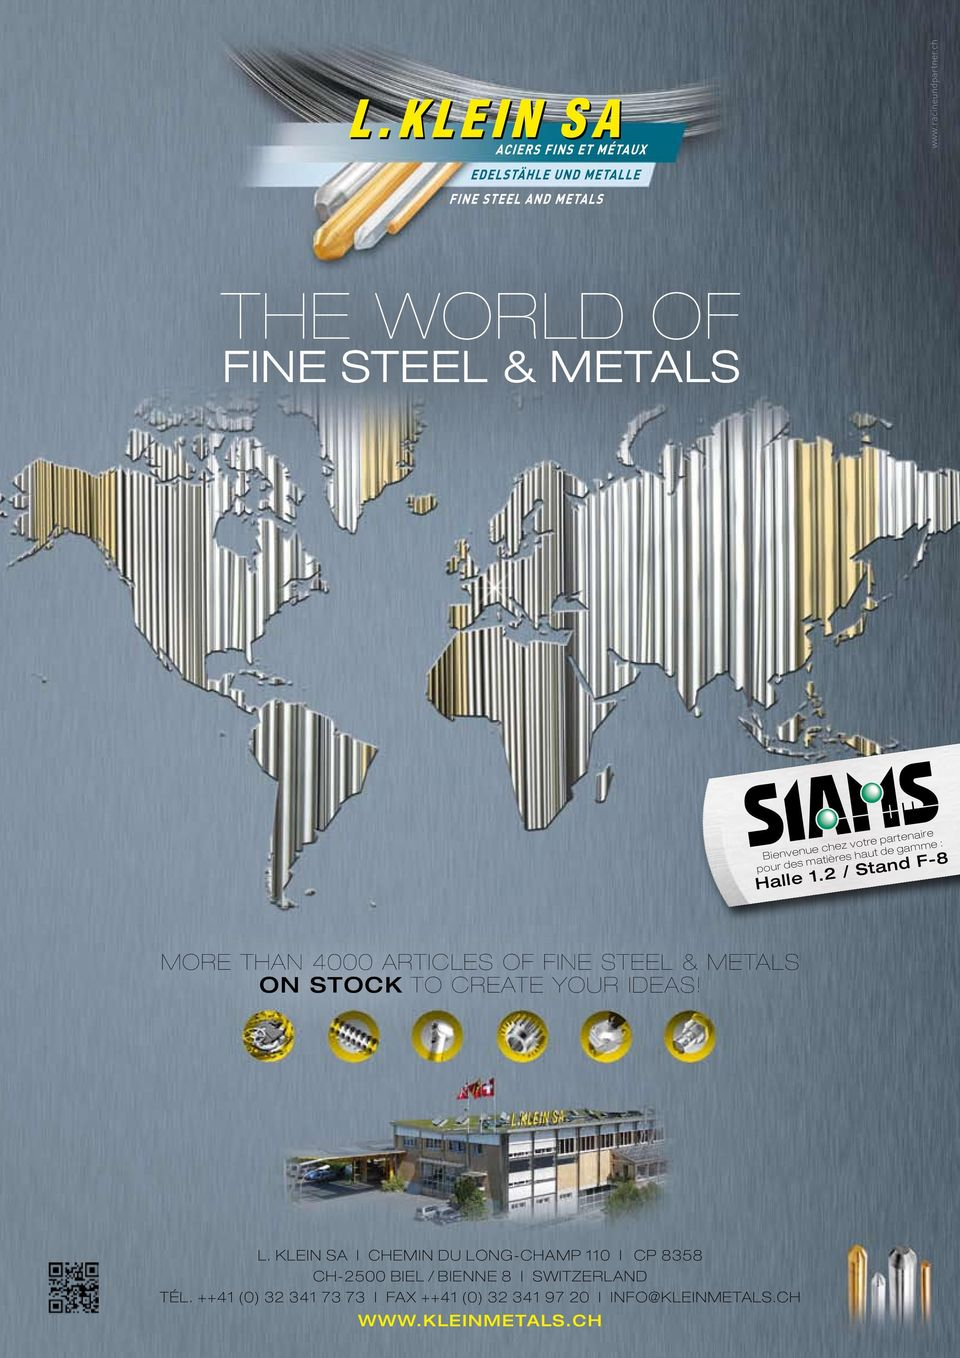 Halle 1.2 / Stand F-8 MORE THAN 4000 ARTICLES OF FINE STEEL & METALS ON STOCK TO CREATE YOUR IDEAS! L.